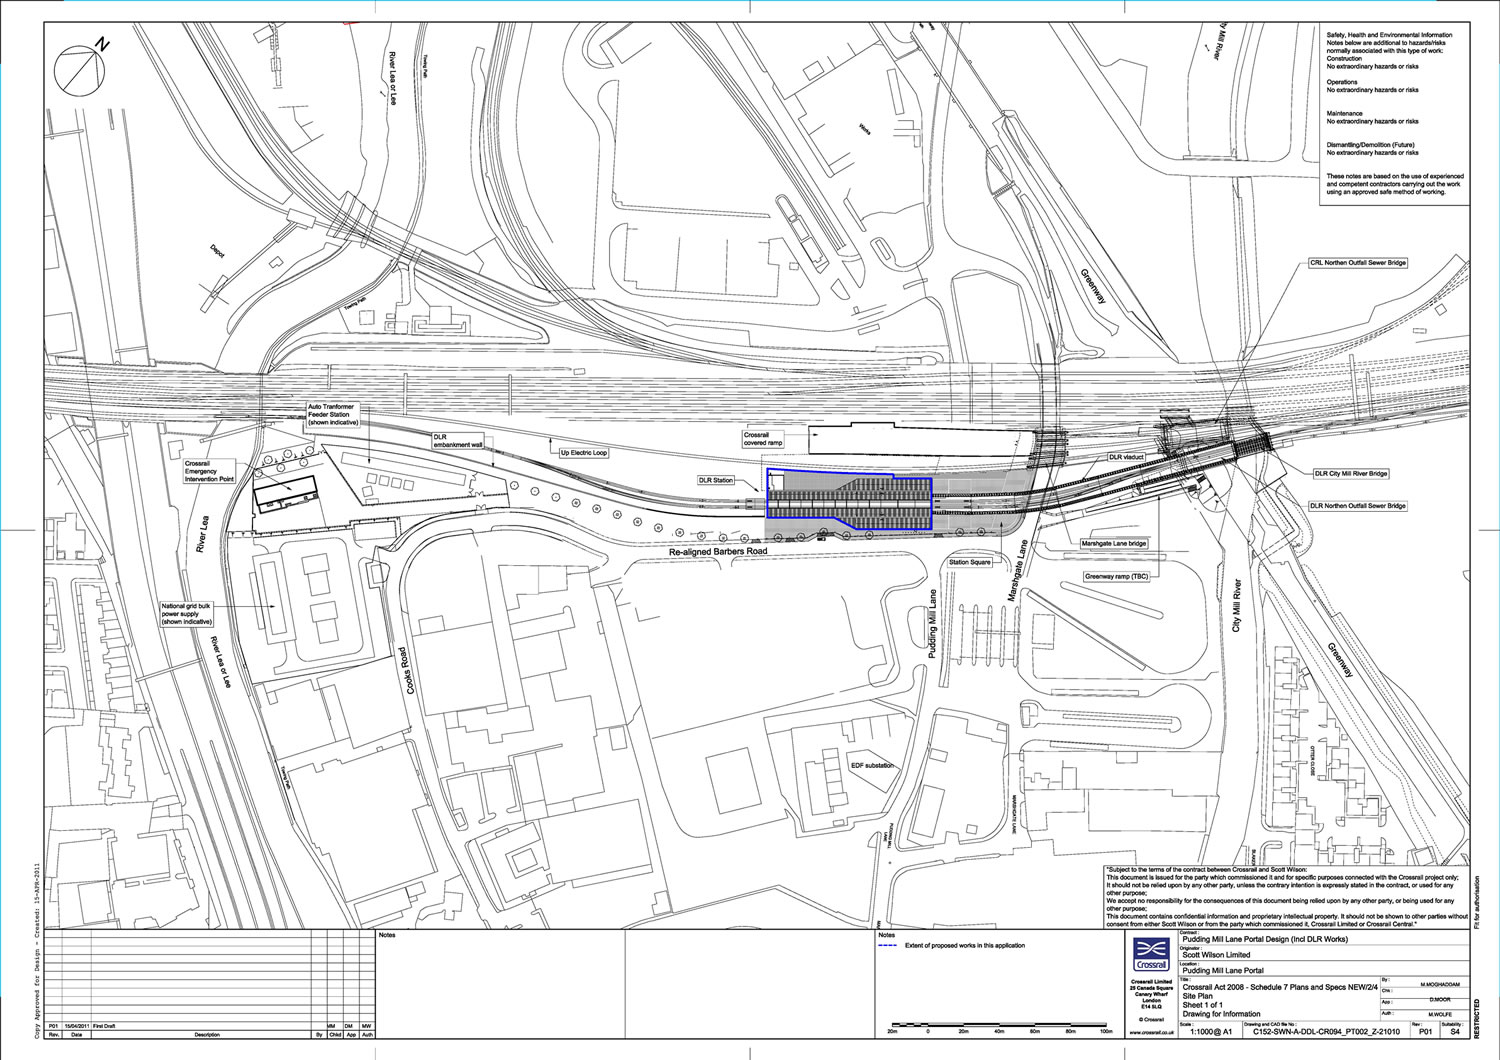 New Pudding Mill Dlr Station Approved